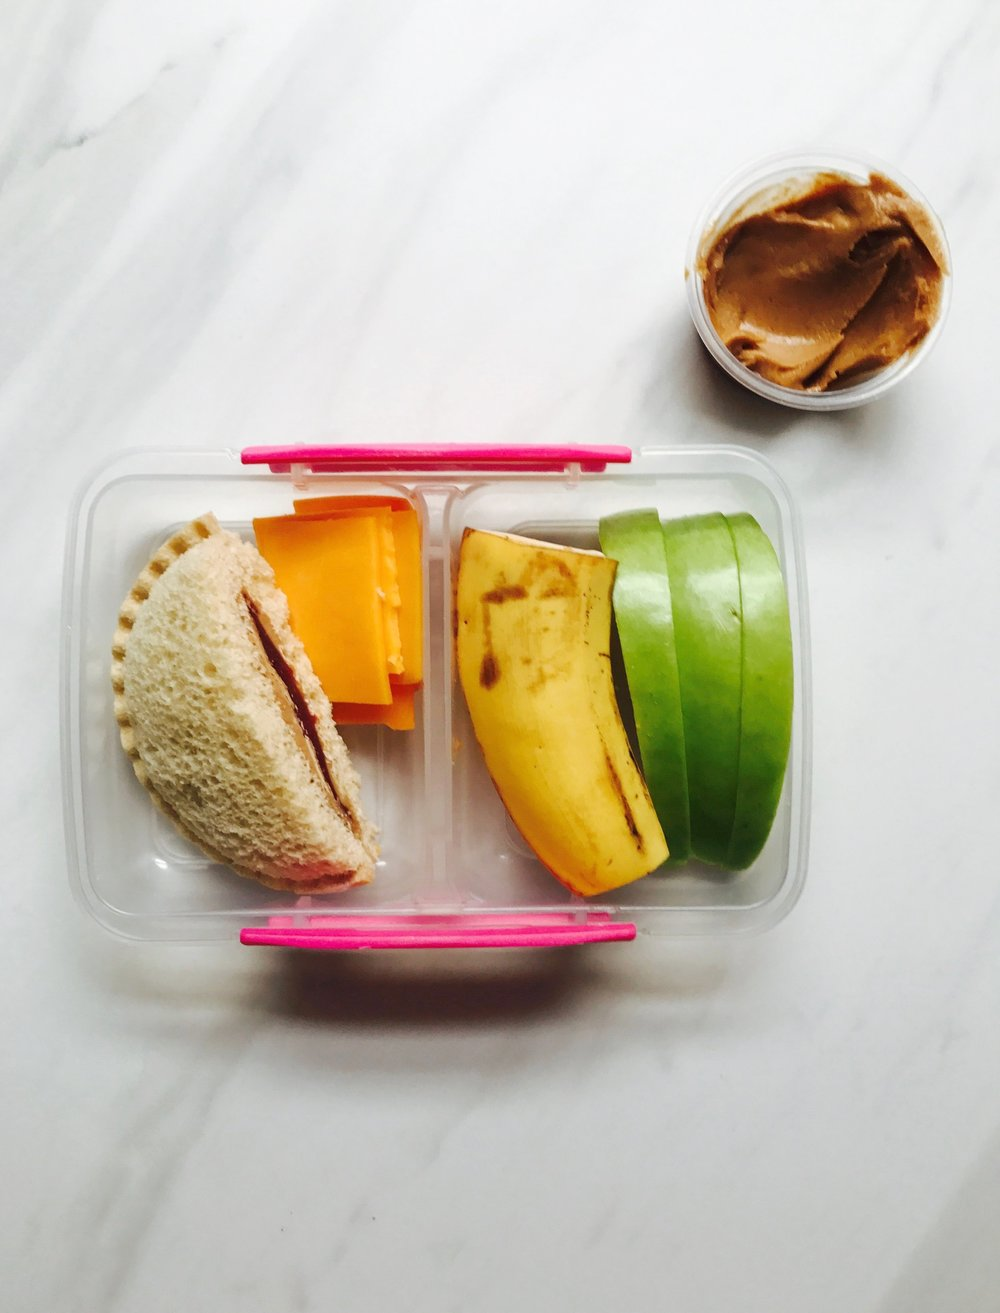 Smuckers PB & J  uncrustables , cheddar cheese slices, banana, green apple, and peanut butter. Little plastic containers are great when you need just one more thing to keep your kid satisfied.